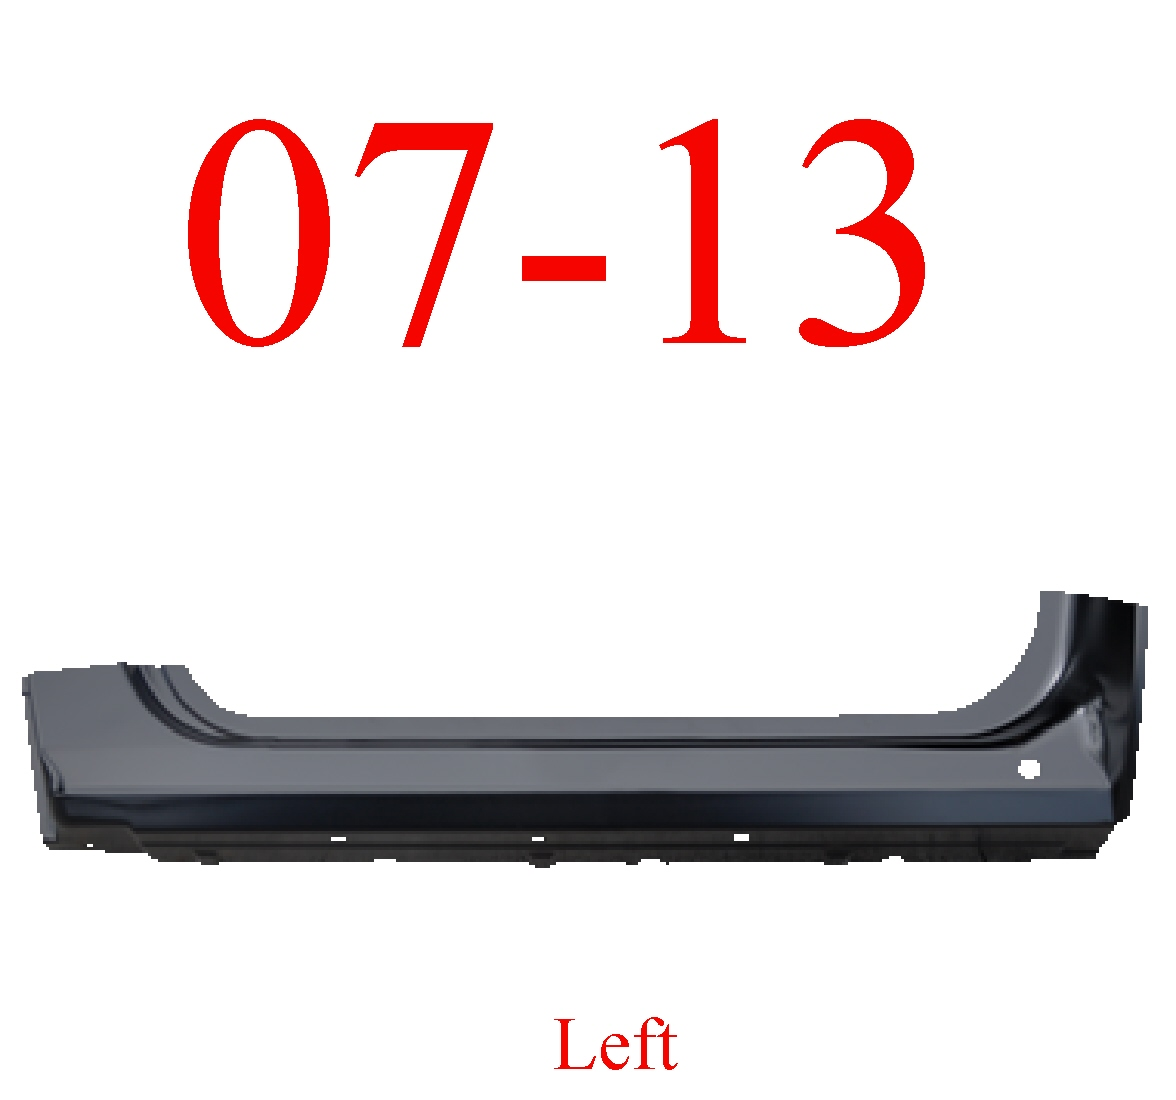 07-13 Left Regular Cab Extended Rocker